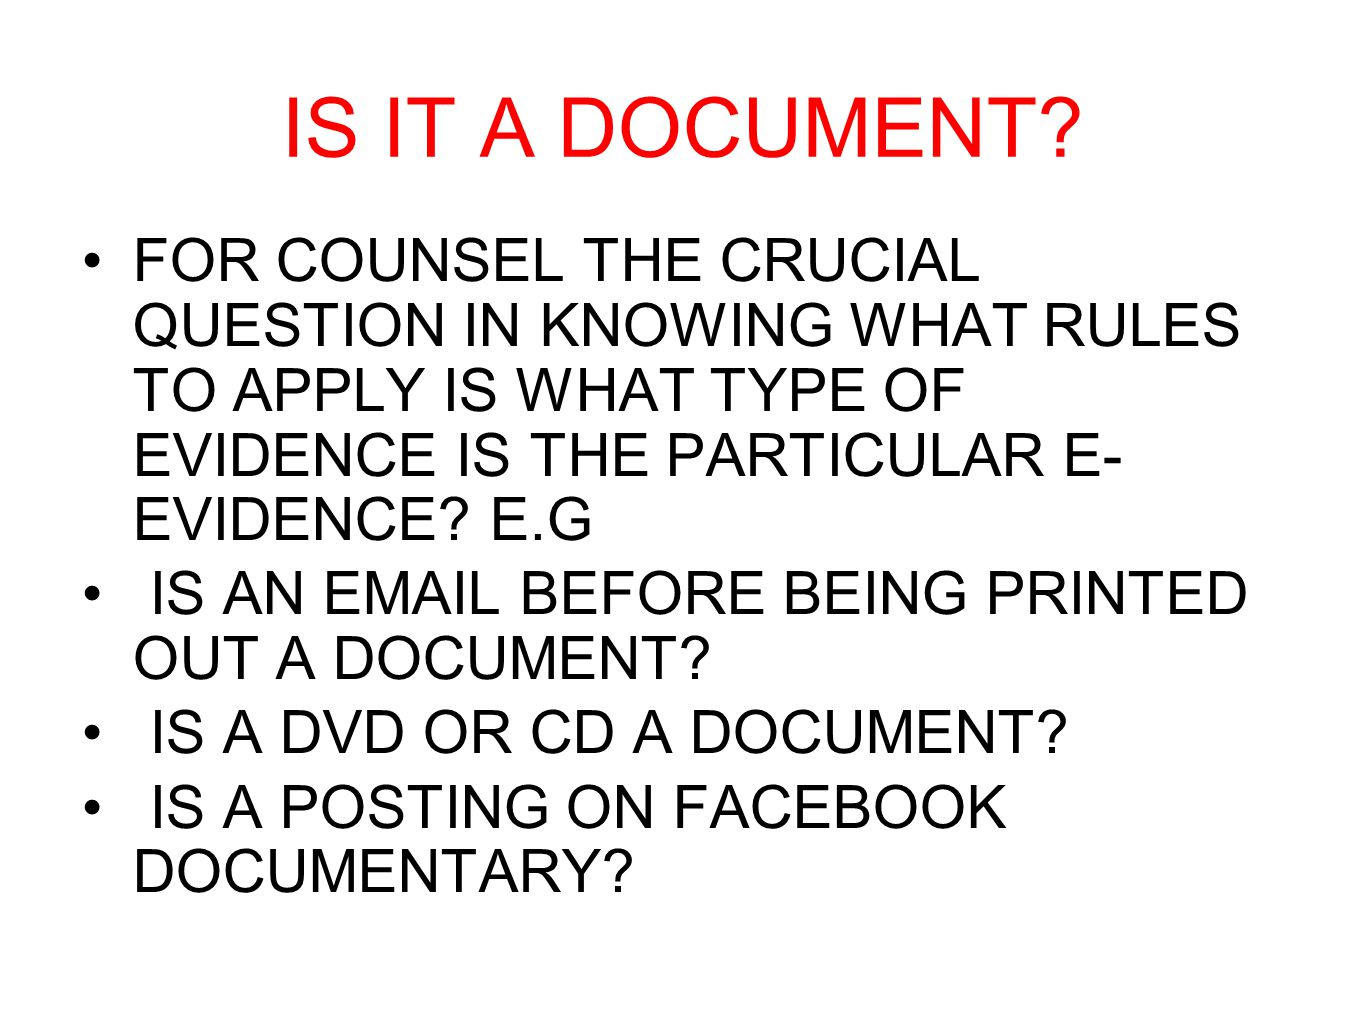 IS IT A DOCUMENT? FOR COUNSEL THE CRUCIAL QUESTION IN KNOWING WHAT RULES TO APPLY IS WHAT TYPE OF EVIDENCE IS THE PARTICULAR E- EVIDENCE? E.G IS AN EM